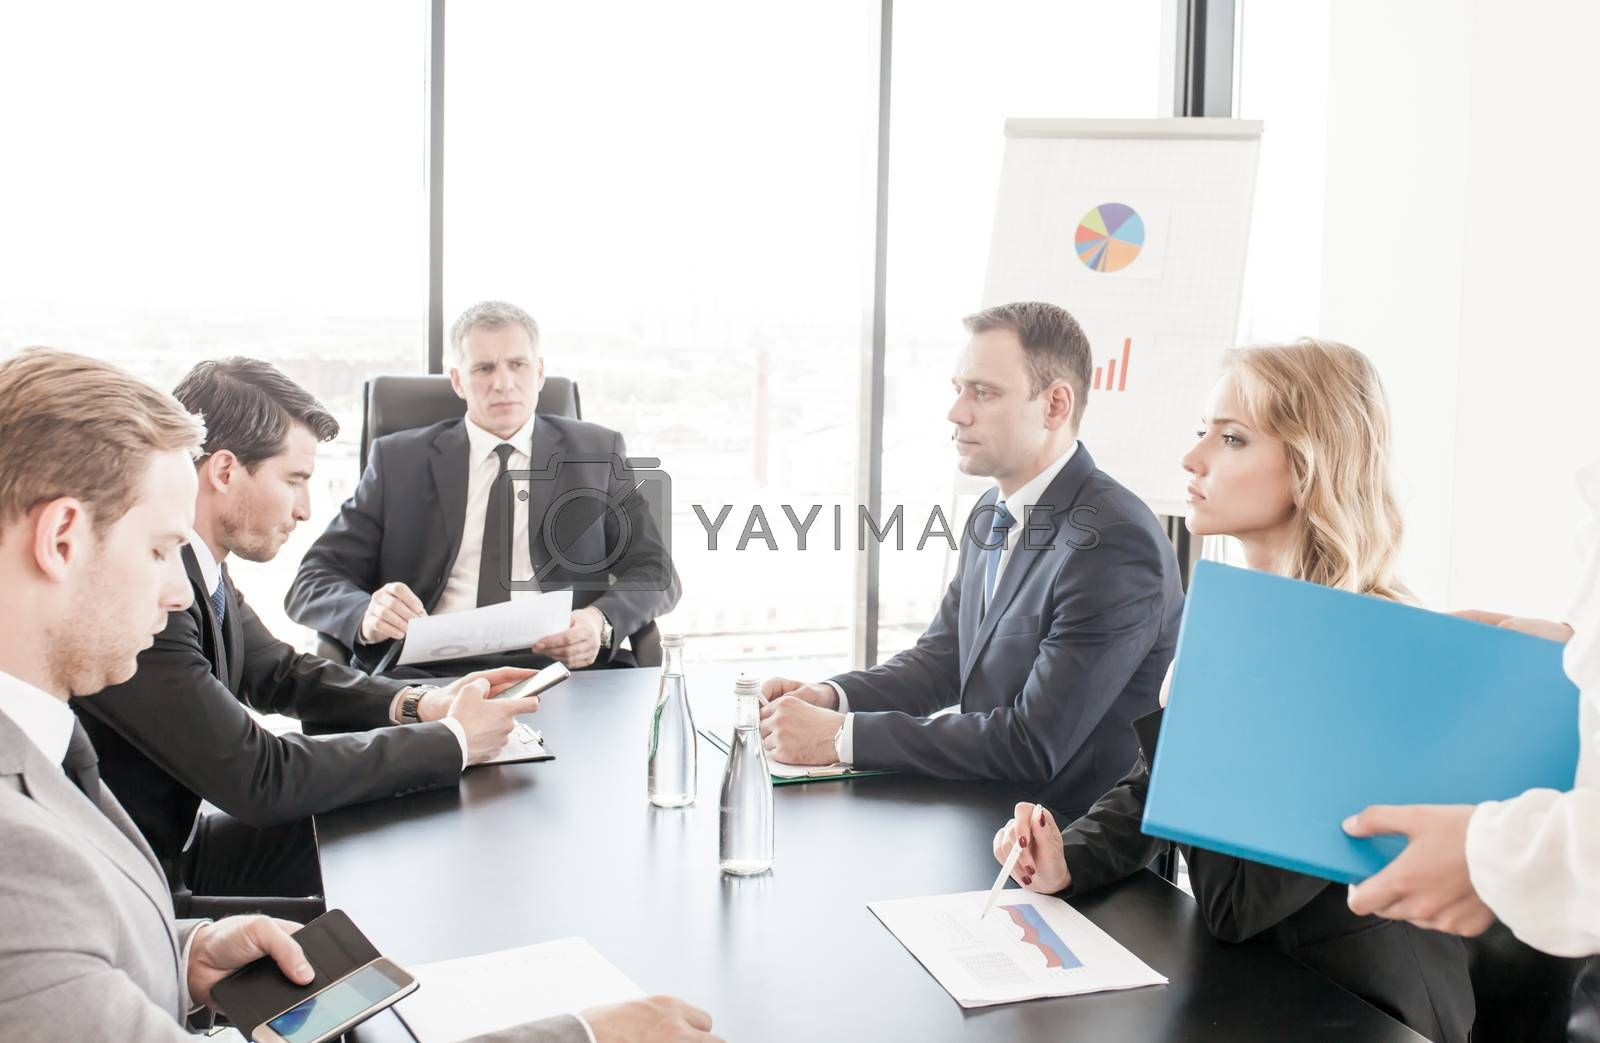 Group of business people discussing with analyzing data financial reports at the office desk